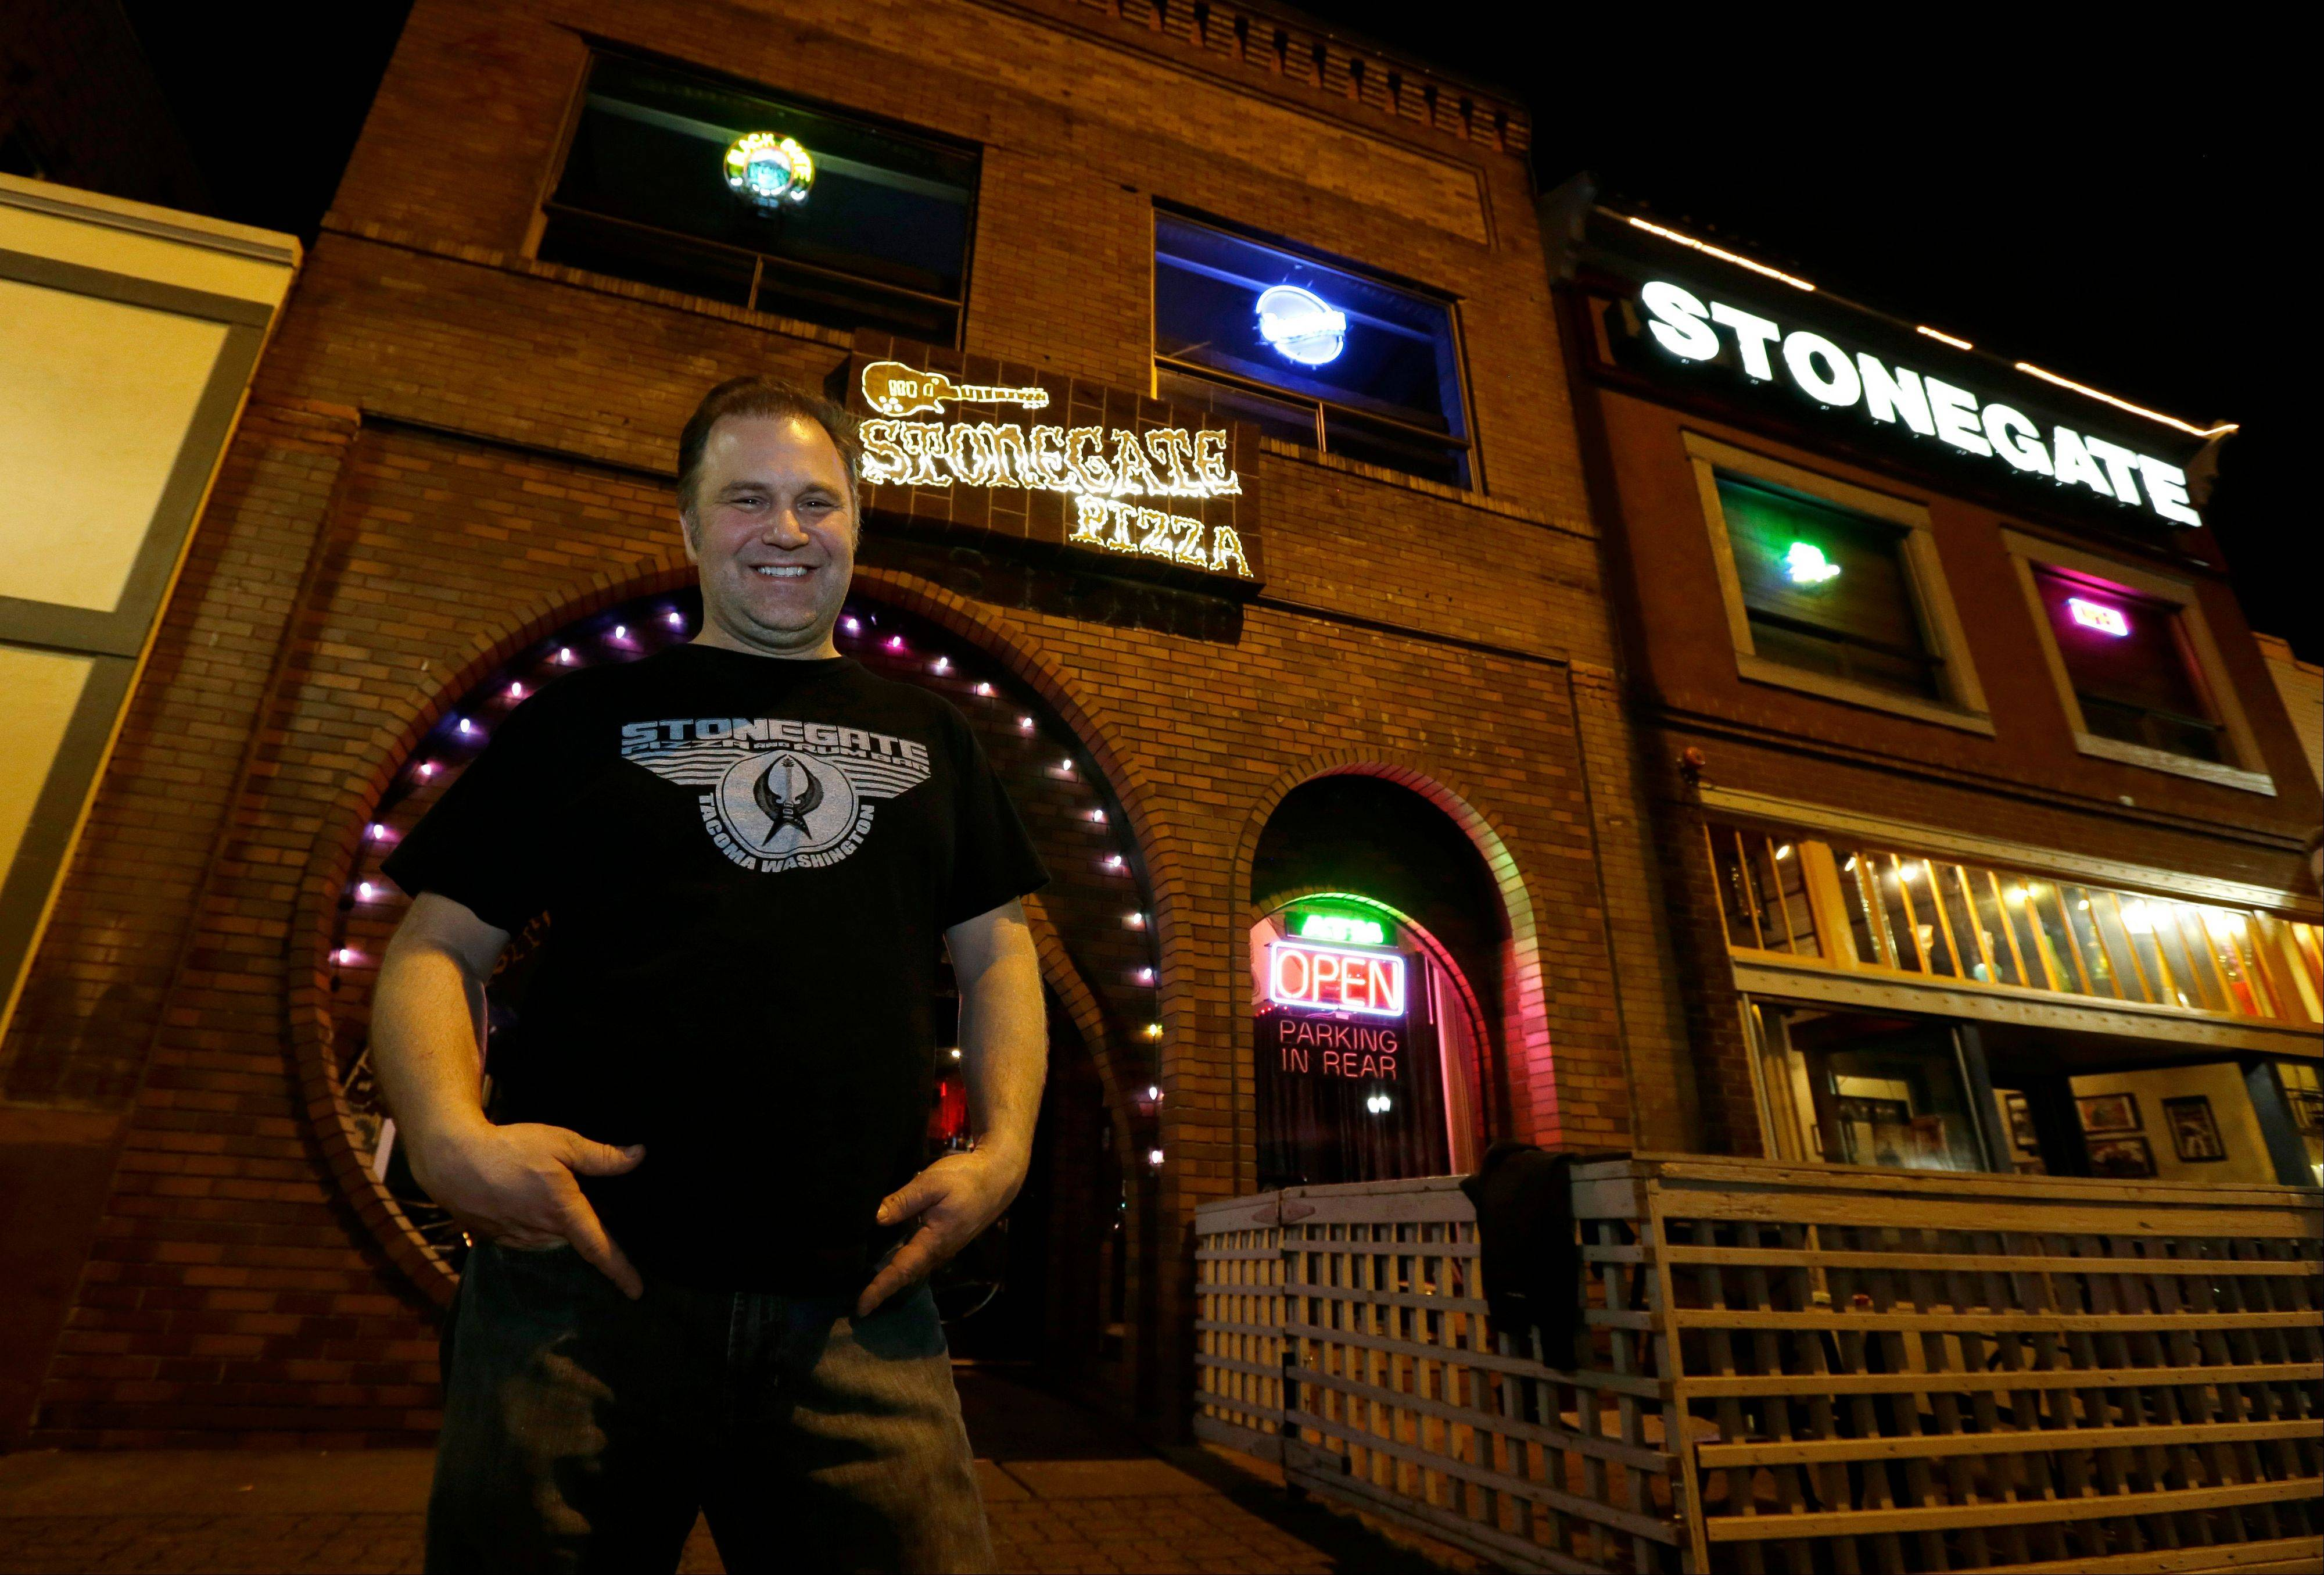 Jeff Call, owner of the Stonegate pizza-and-rum bar, poses for a photo in front of his business, Saturday, March 2, 2013, in Tacoma, Wash. Call charges patrons a small fee to become a member of the private second-floor club in the lounge area upstairs, which allows ìvaporizingî marijuana, a method that involves heating the marijuana without burning it. Last fall, Washington and Colorado became the first states to legalize marijuana use for adults over 21.